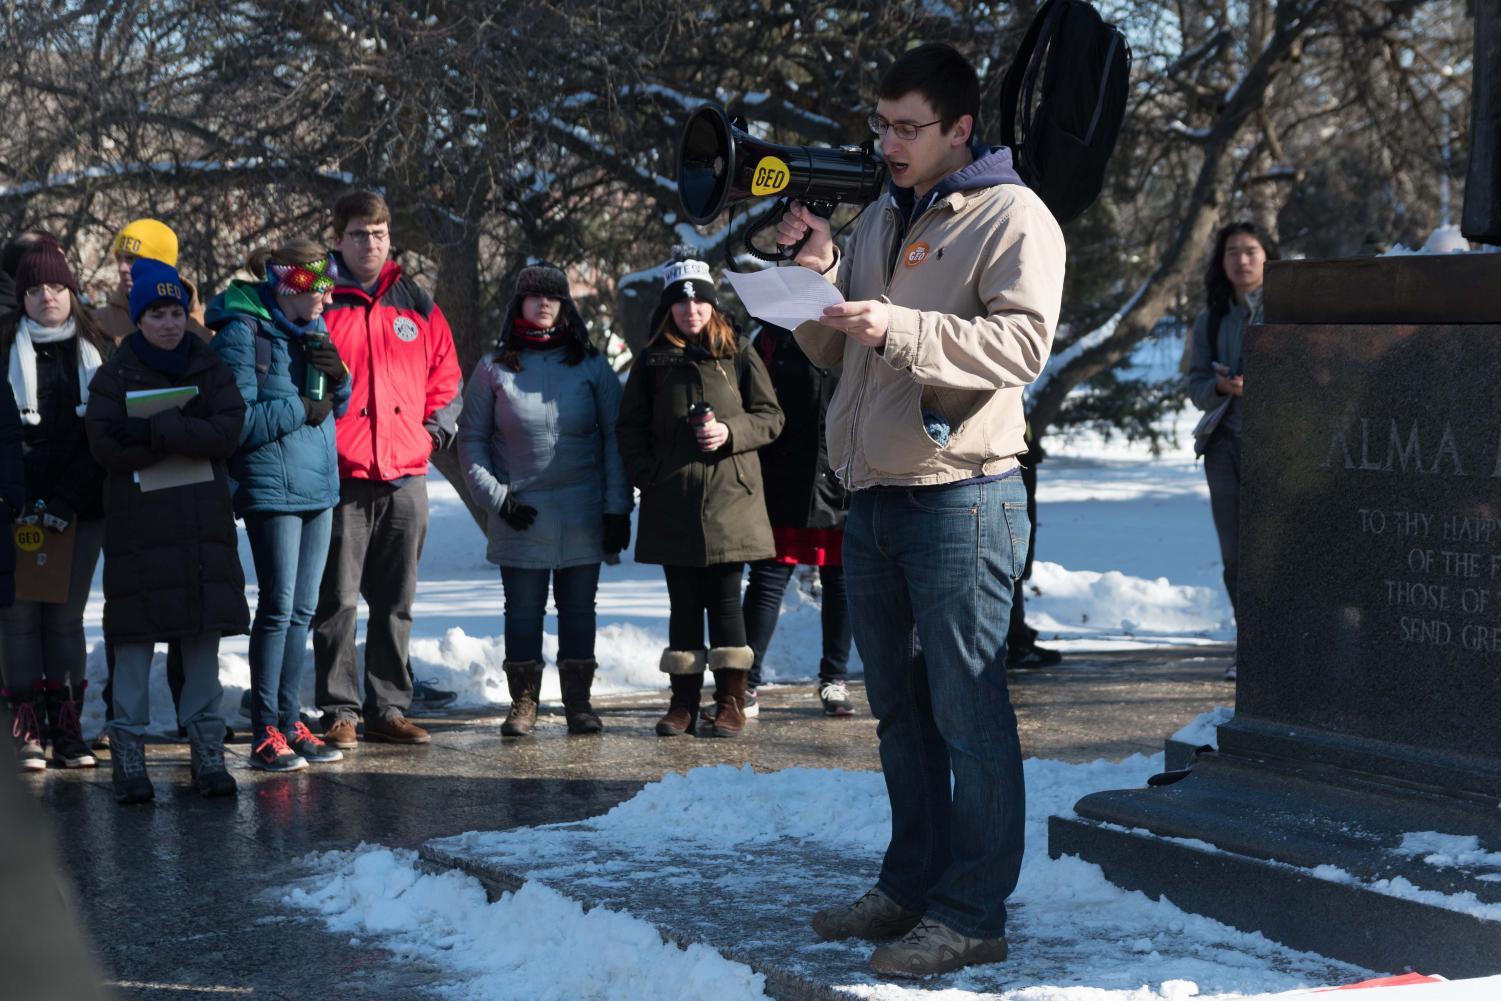 Graduate employees protest at the Alma Mater for a fair contract on Jan 18. The Graduate Employees' Organization announced this morning that it will begin striking Feb. 26 if an agreement with University administration is not reached beforehand.